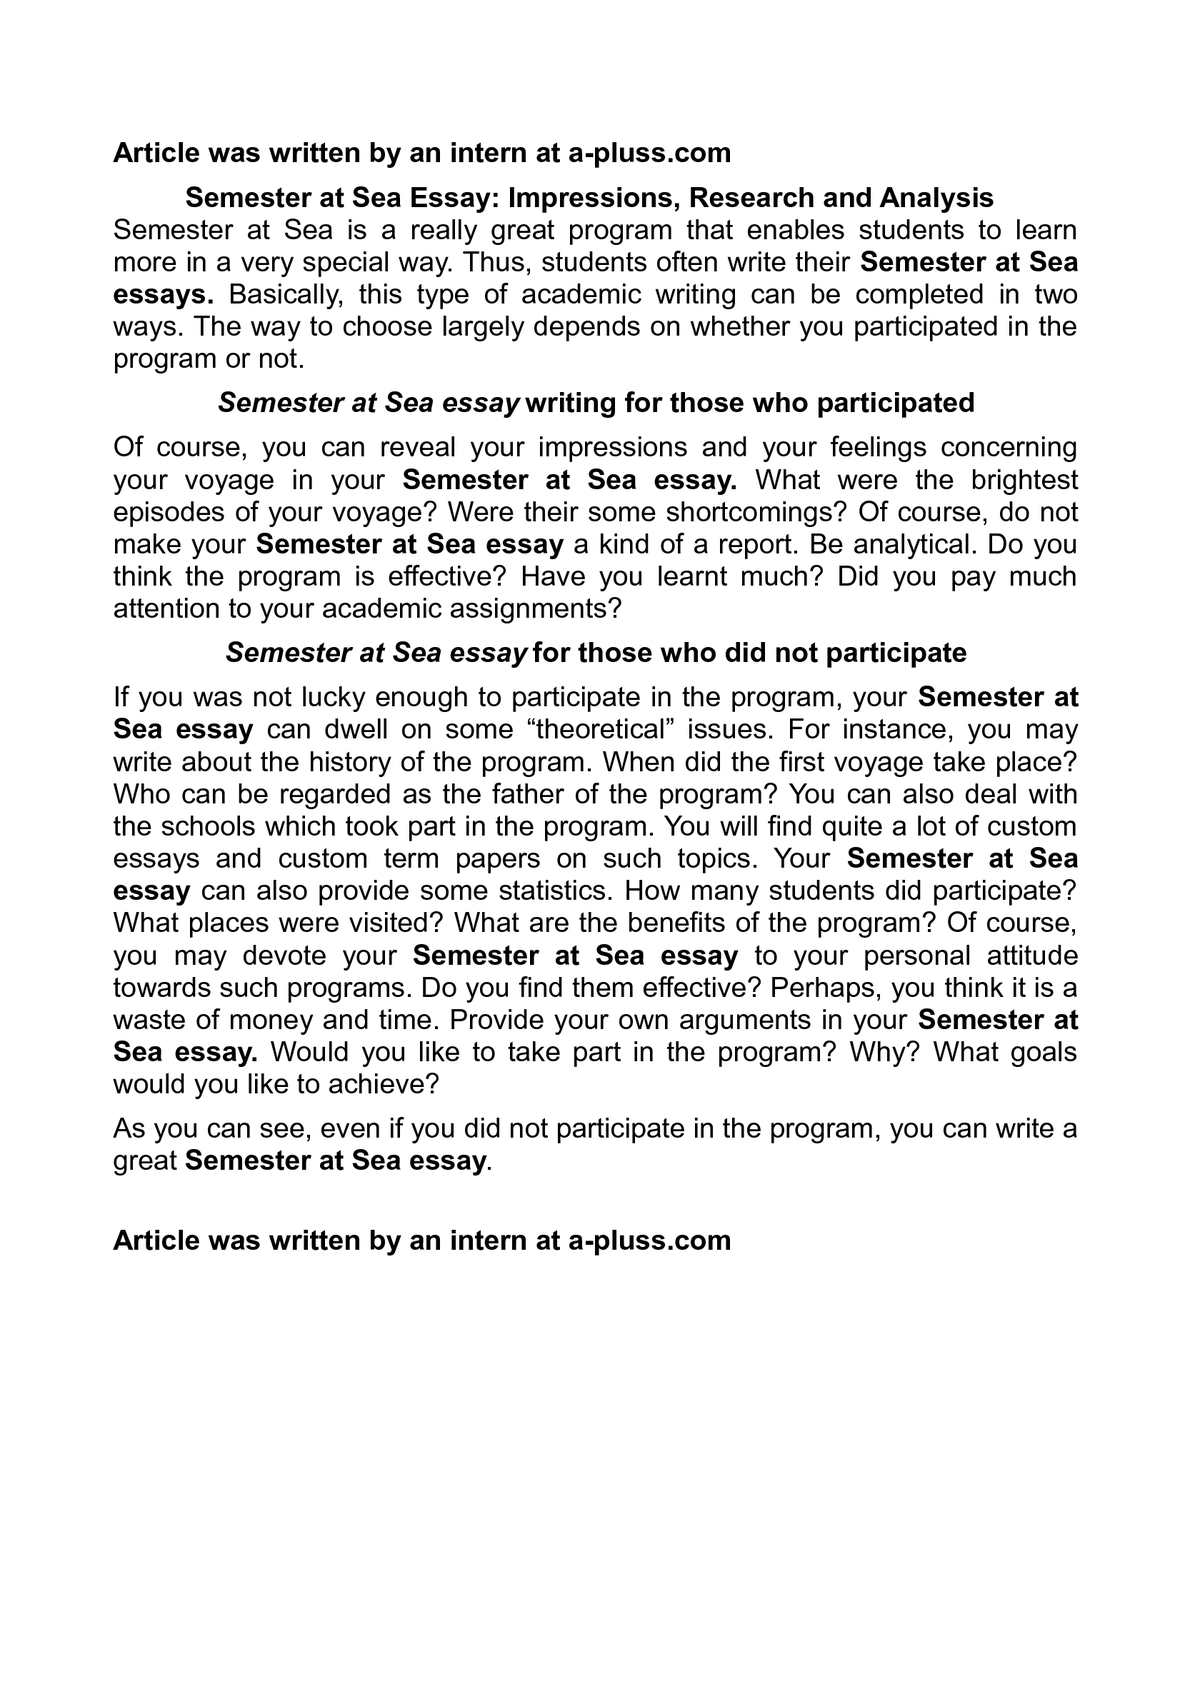 Essay Thesis Statements  Mahatma Gandhi Essay In English also Model Essay English Calamo  Semester At Sea Essay Impressions Research And Analysis Essay About Healthy Eating